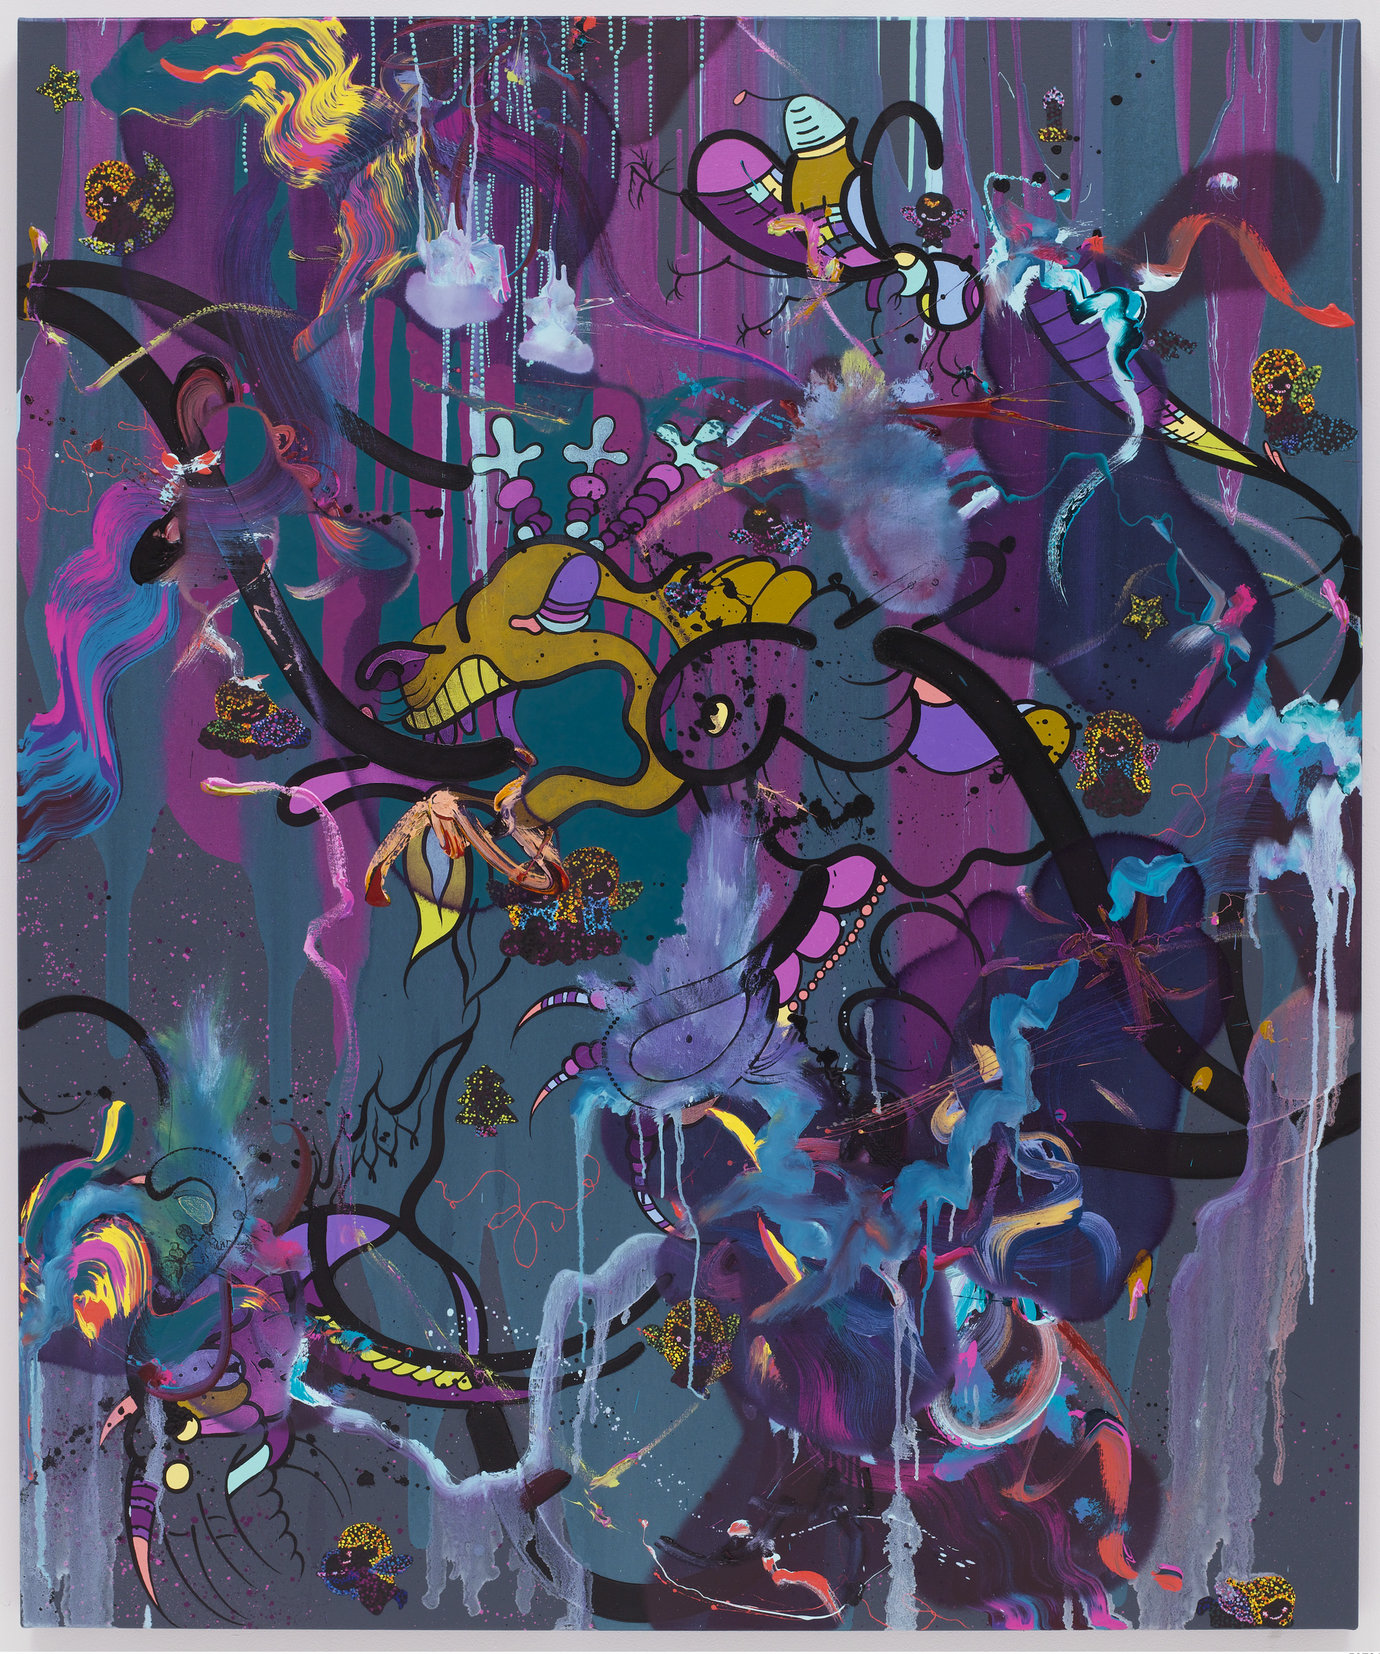 ", 2009. Oil, acrylic and gouache on canvas, 60"" x 50"" (152.4 cm x 127 cm)."